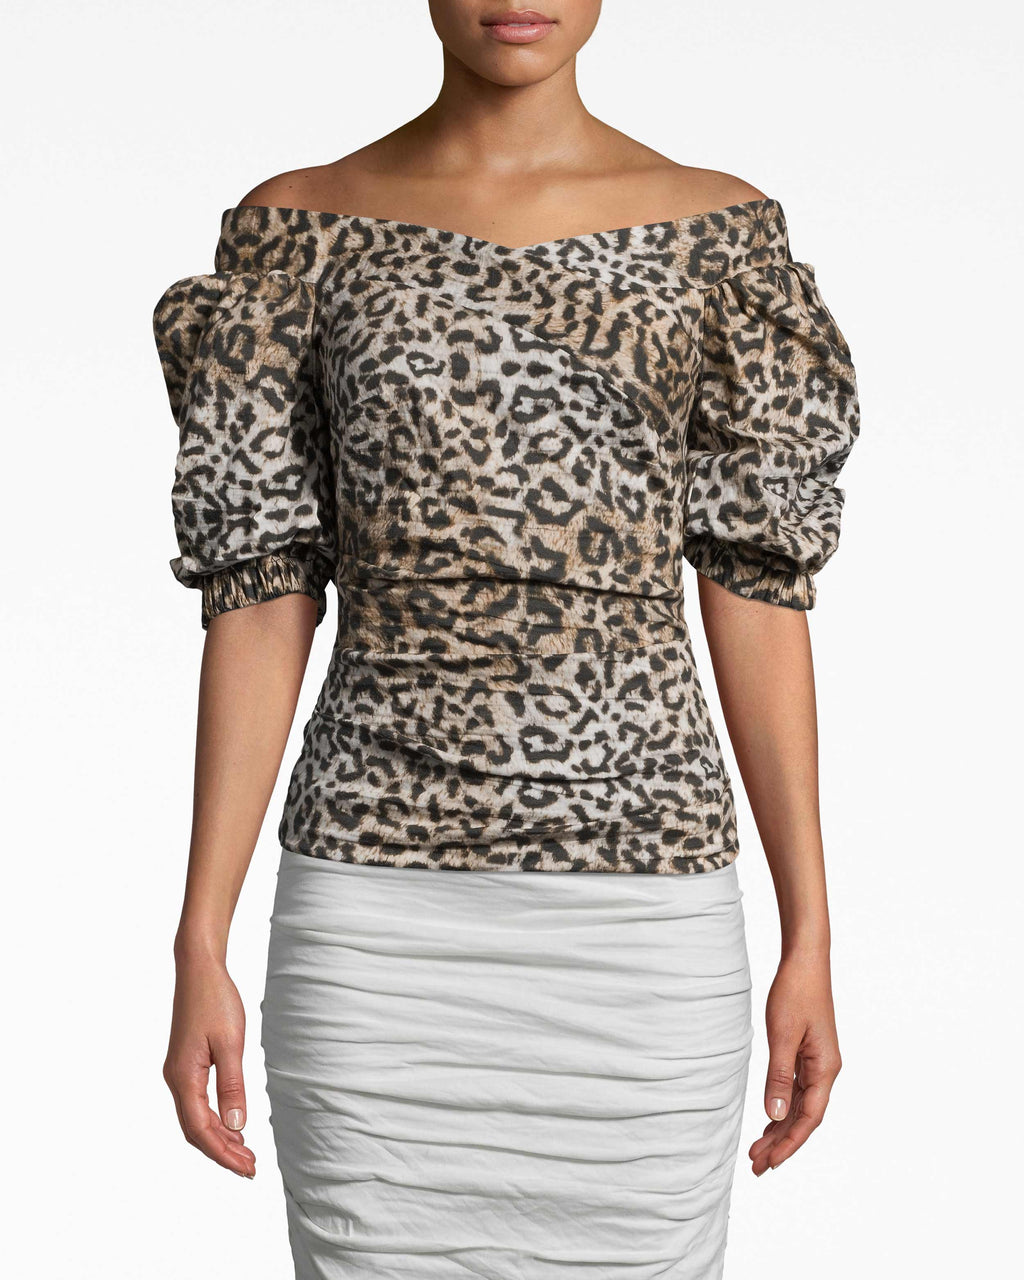 BI10163 - LEOPARD PUFF SLEEVE TOP - tops - shirts - IN OUR SIGNATURE COTTON METAL, THIS OFF THE SHOULDER TOP FEATURES PUFFED SLEEVES AND A RUCHED BODY FOR A FLATTERING FIT.EXPOSED BACK ZIPPER FOR CLOSURE.